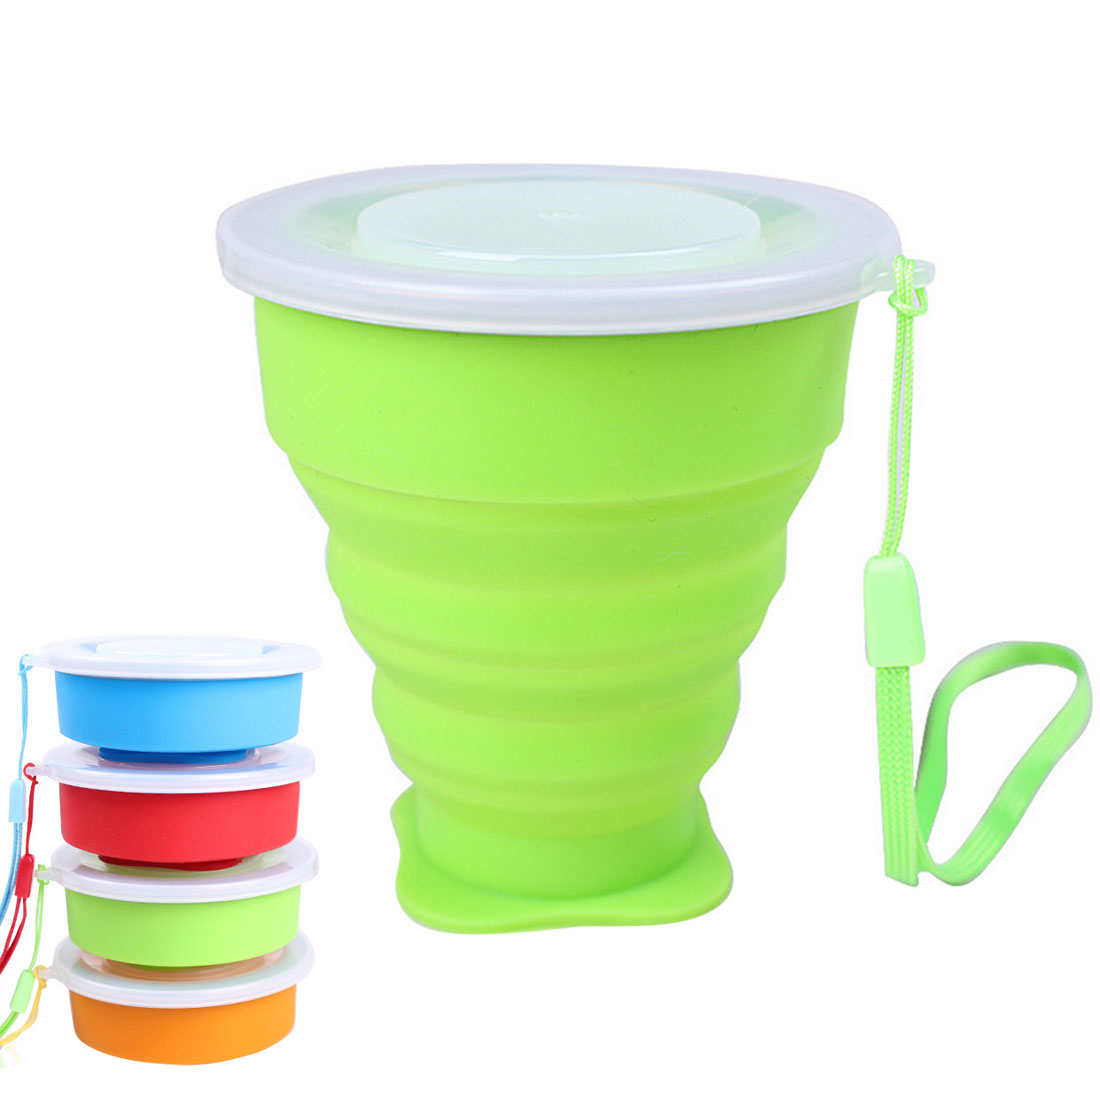 Portable Folding Cup Collapsible Mug Silicone Pop Up Cup Outdoor Travel Tool Kit Hiking Camping Equipment with Lid & Strap